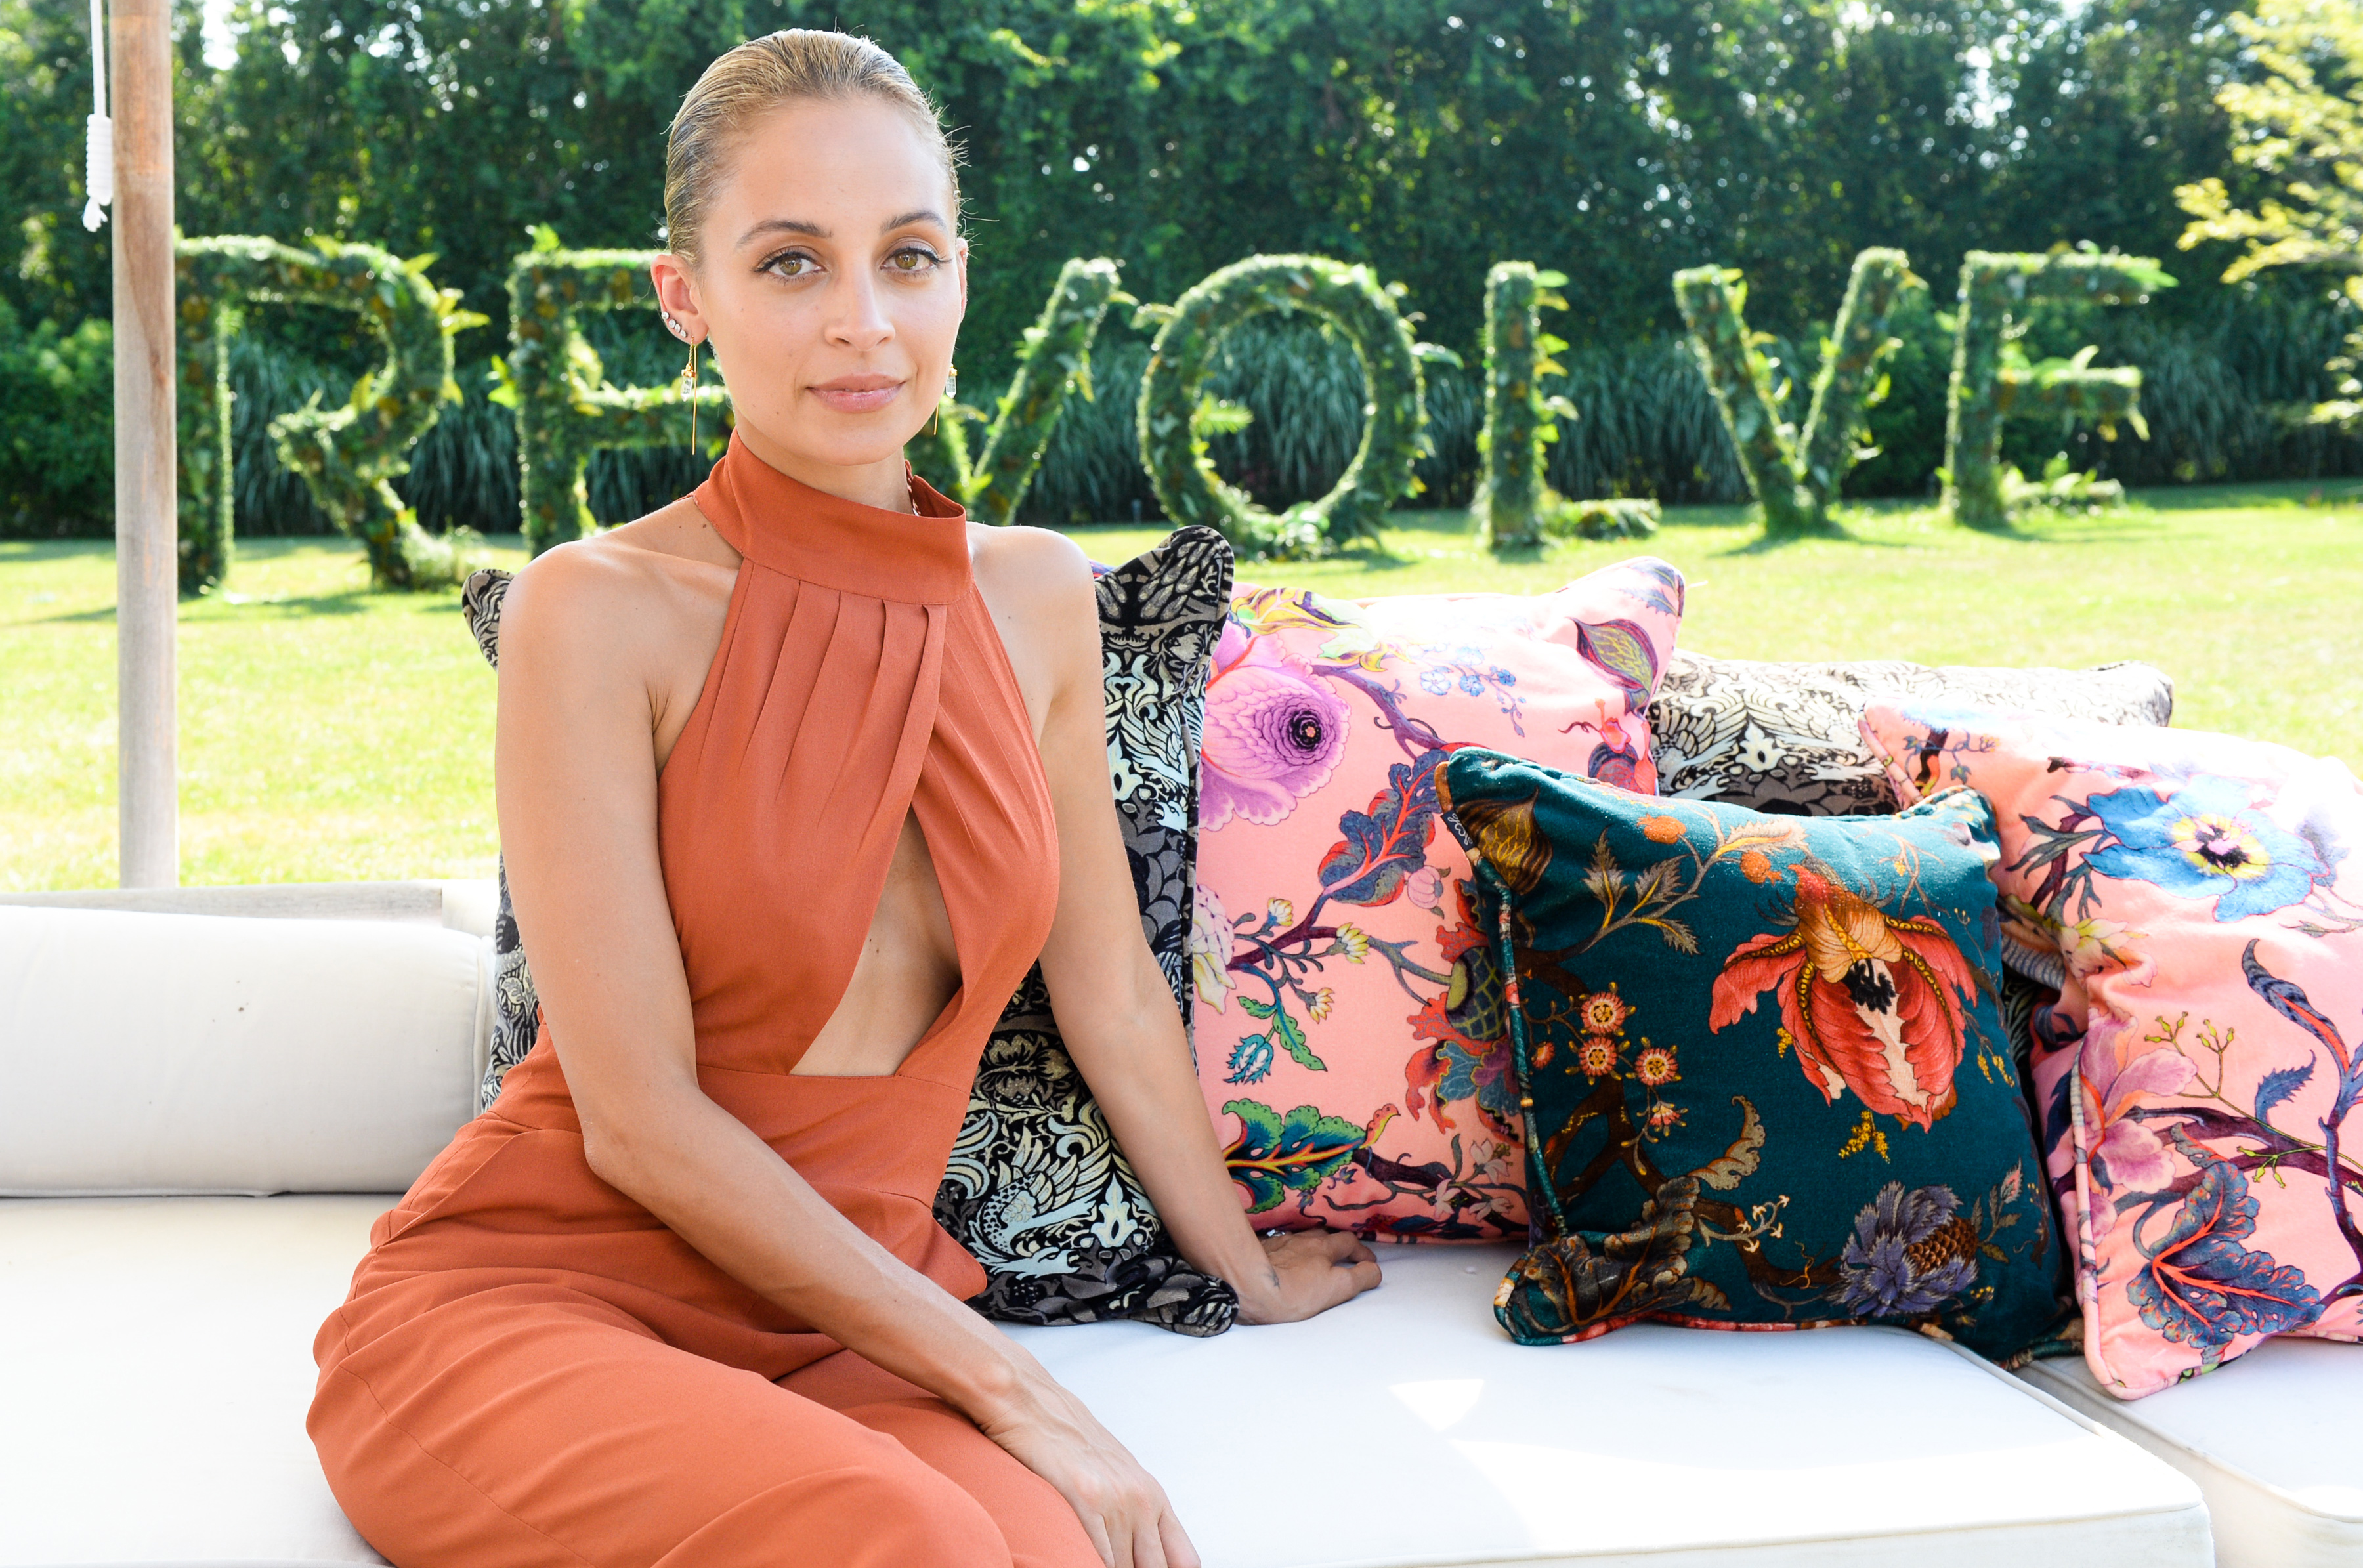 Nicole Richie at the Revolve party.